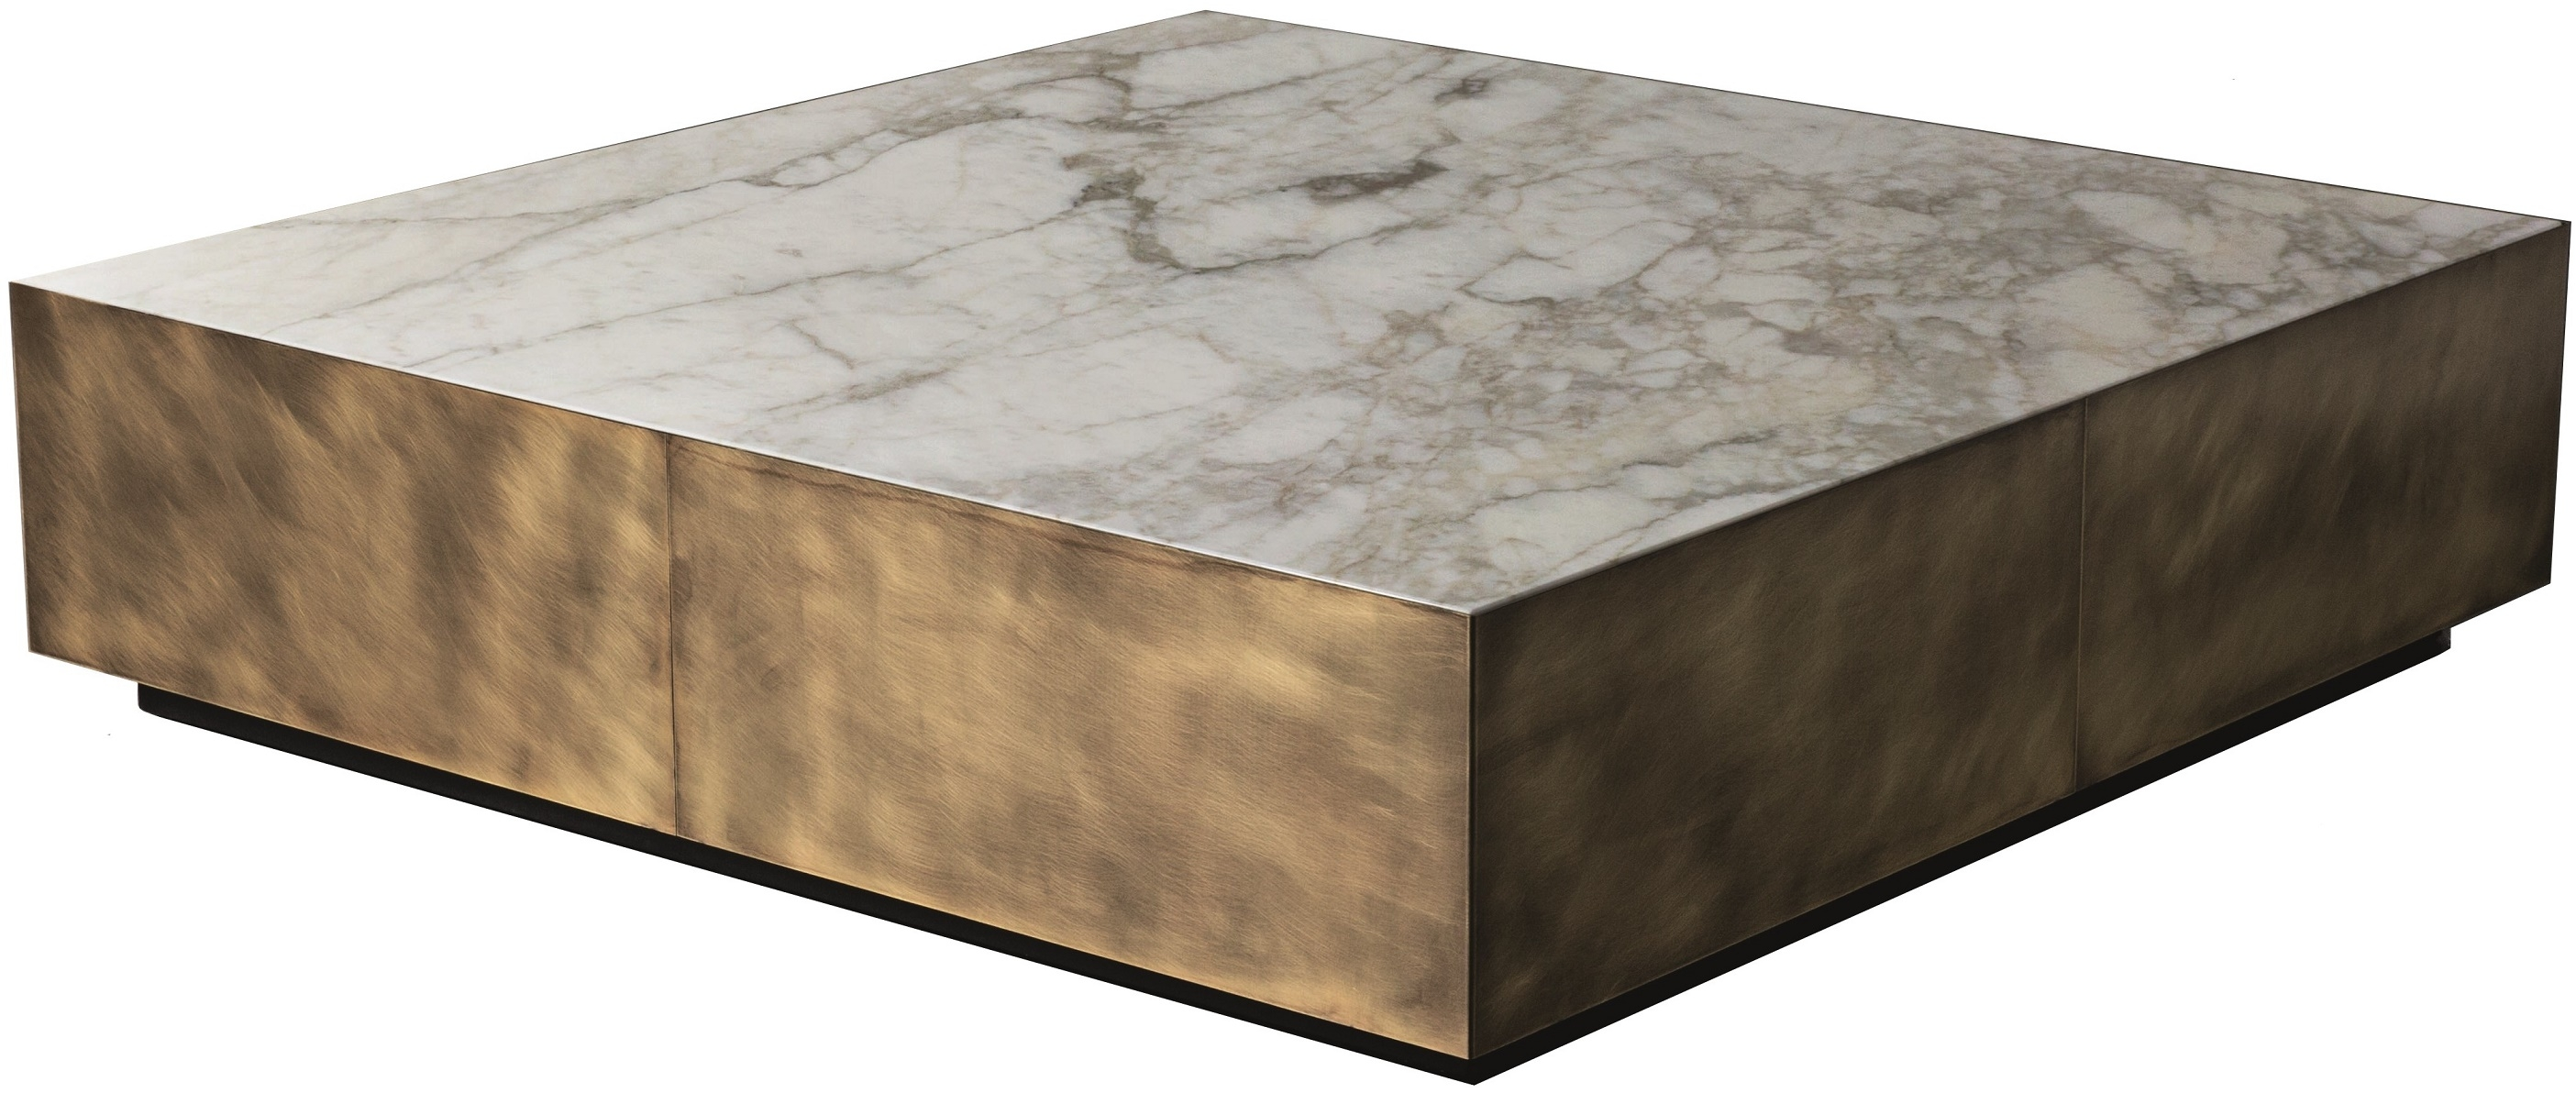 belt meridiani coffee table Top Result 50 Inspirational Standard Coffee Table Height Picture 2017 Uqw1